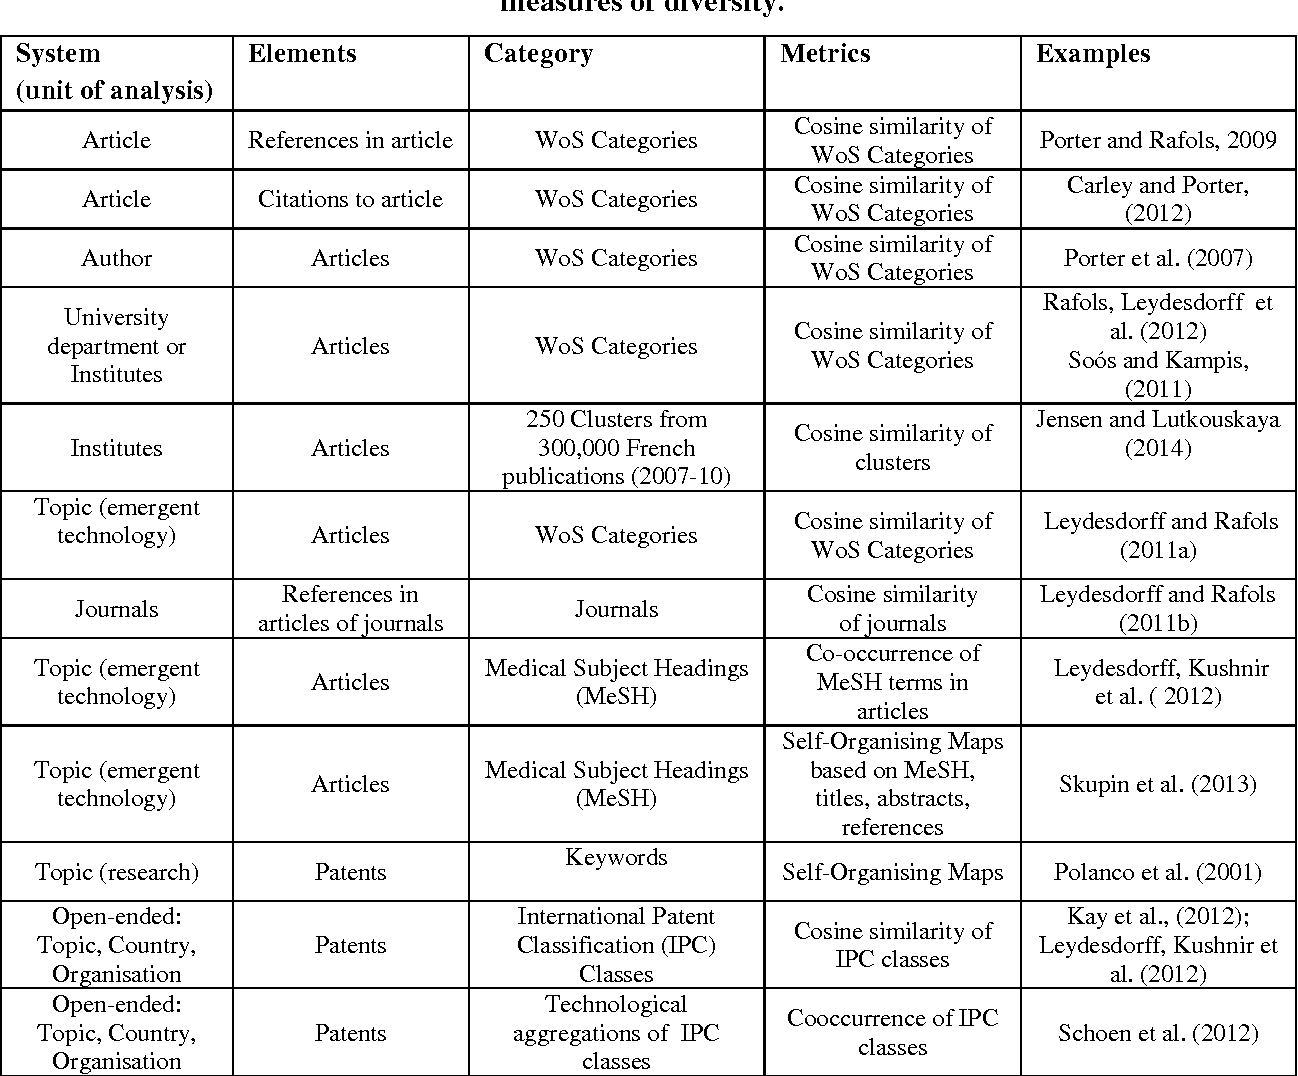 Table 2 from Knowledge Integration and Diffusion: Measures